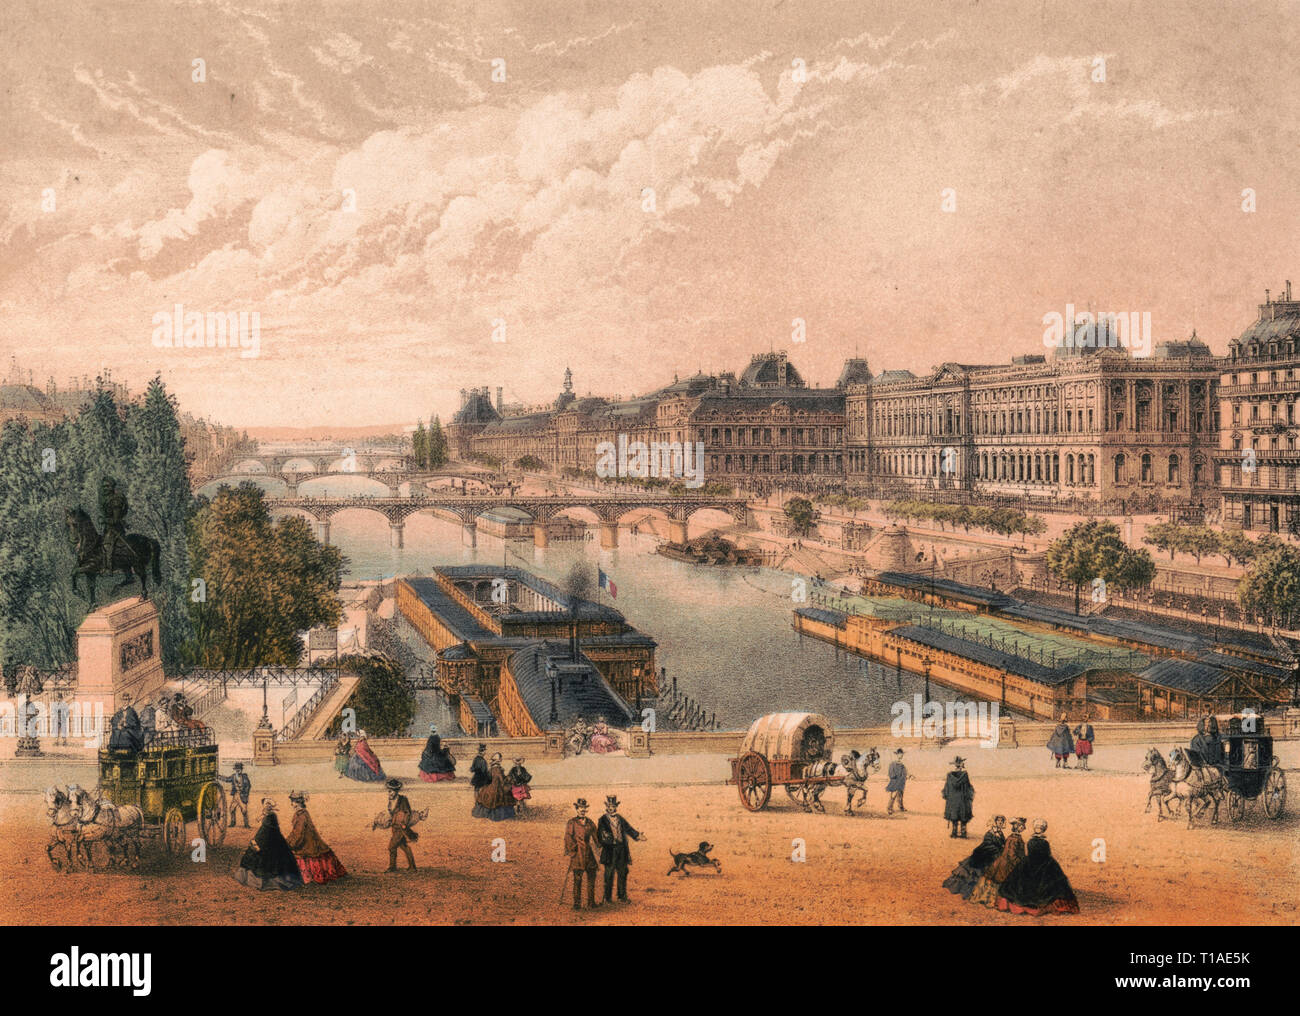 Paris. Le Louvre et les Tuileries vue prise du Pont Neuf - Print shows a bird's-eye view of the Louvre and the Tuileries Palace, from above the Pont Neuf, Paris, France, with pedestrians, stagecoaches, and a covered wagon on the bridge in the foreground. - Stock Image